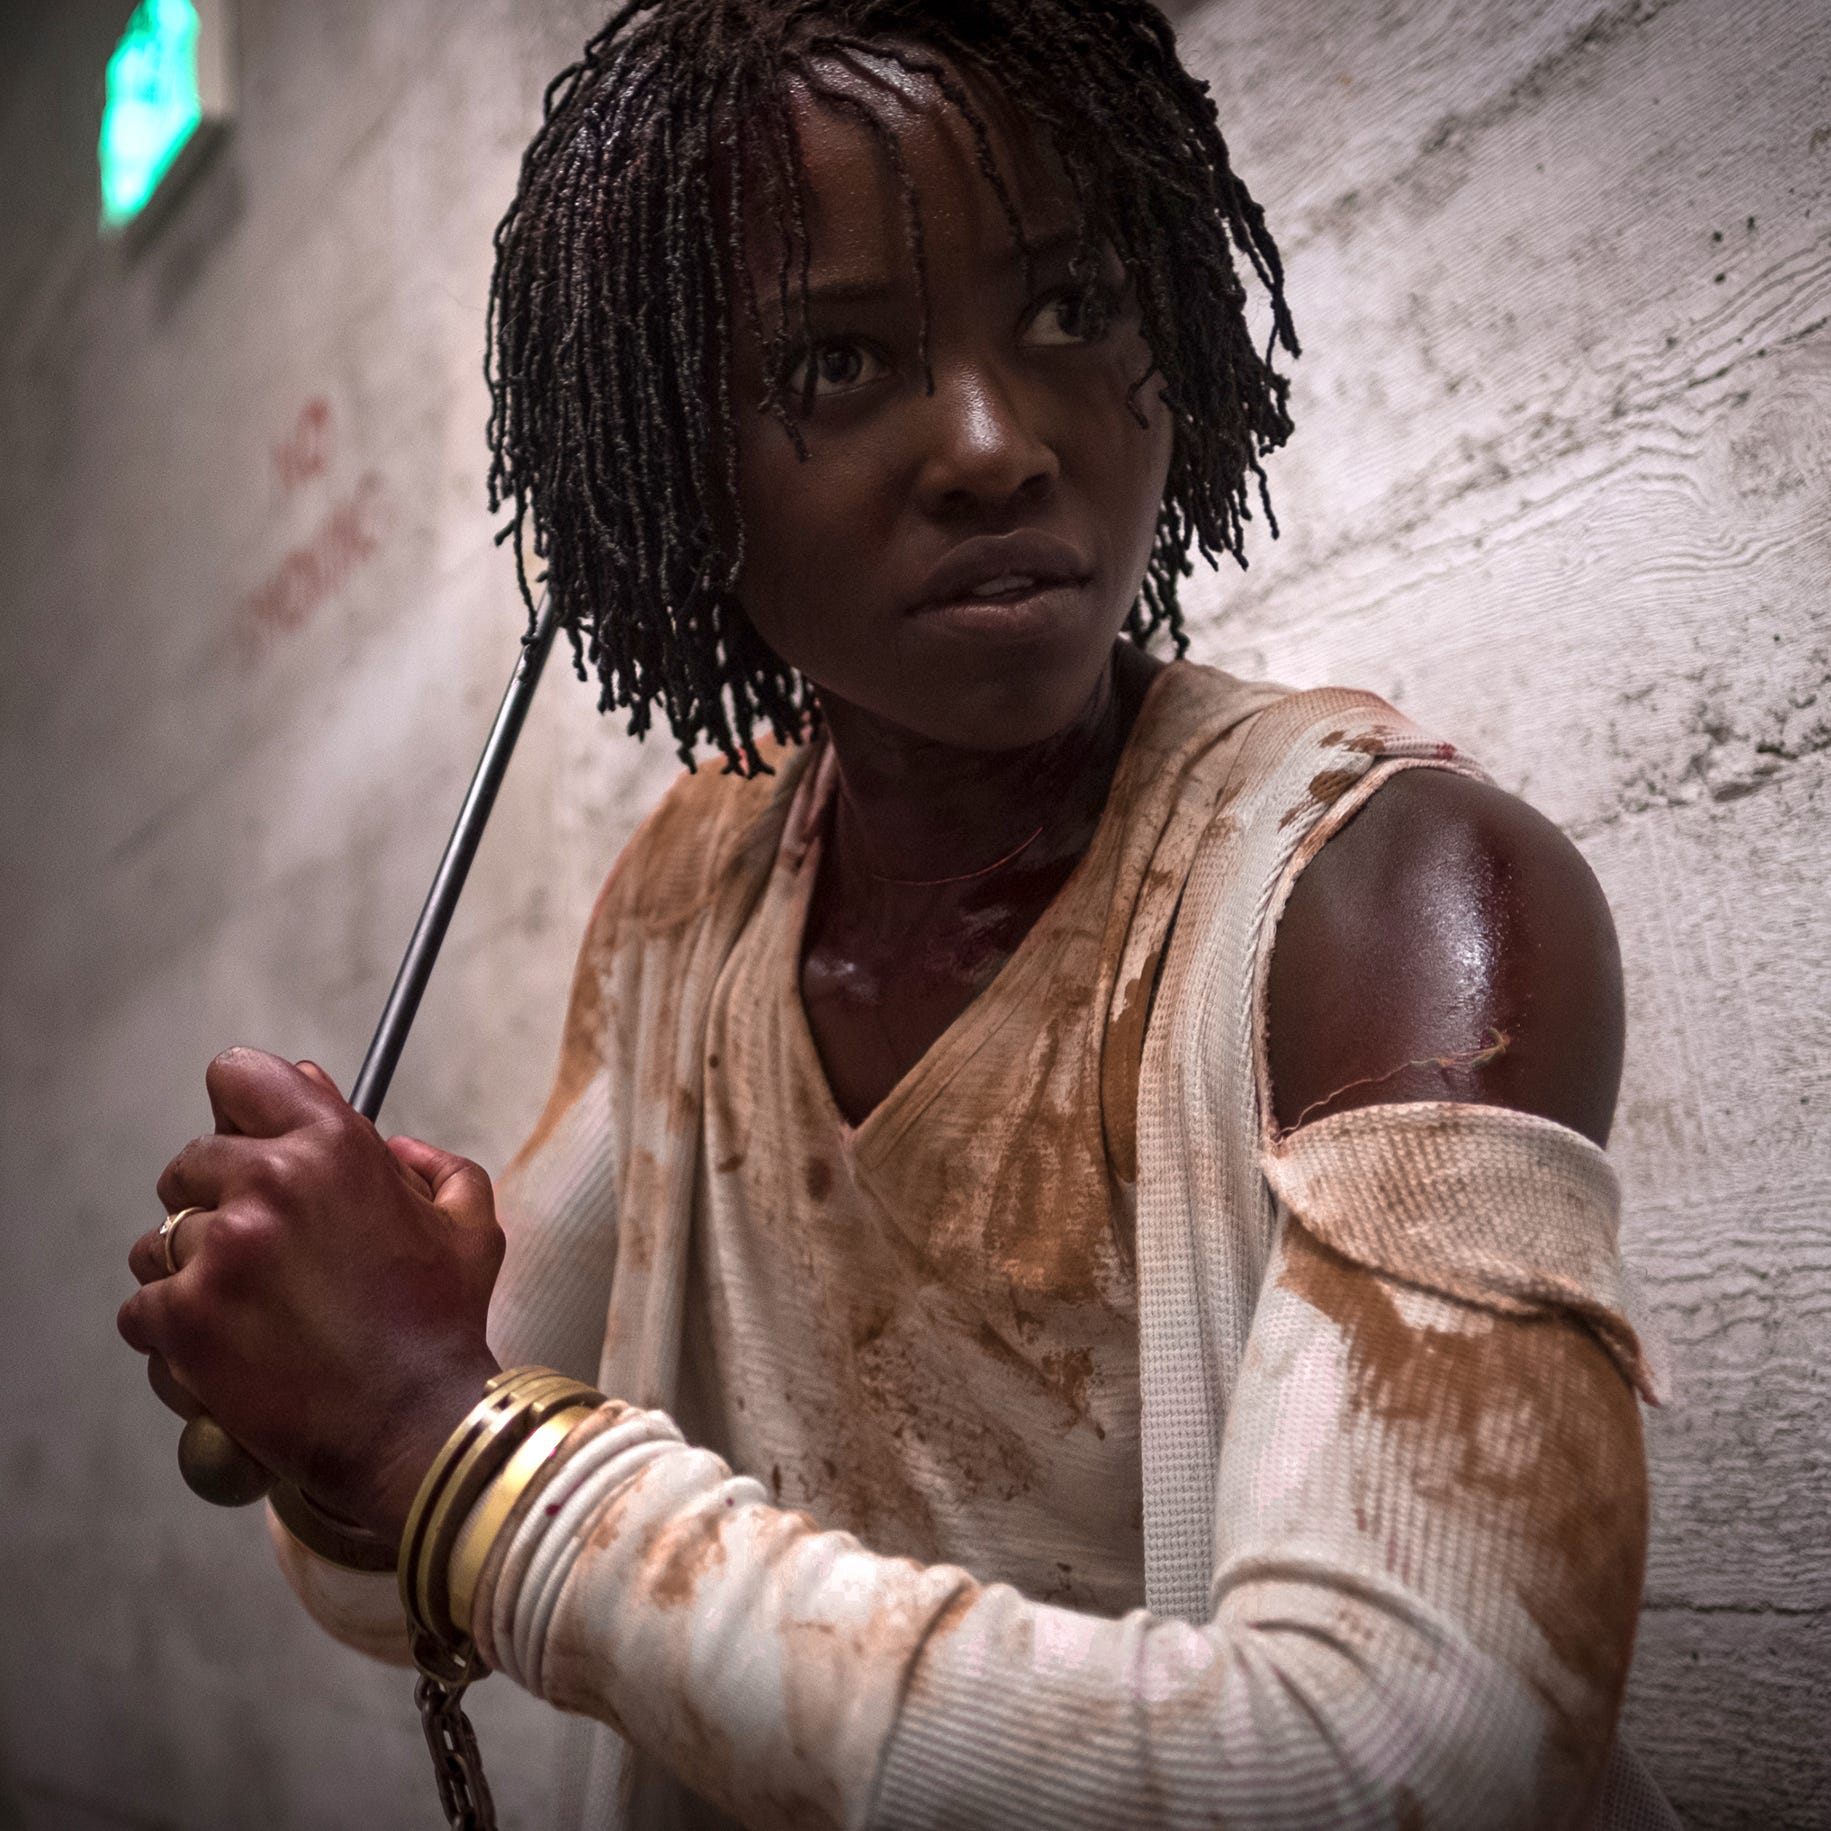 'Lupita scared the s*** out of me!': Jordan Peele talks new film 'Us' at SXSW in Austin